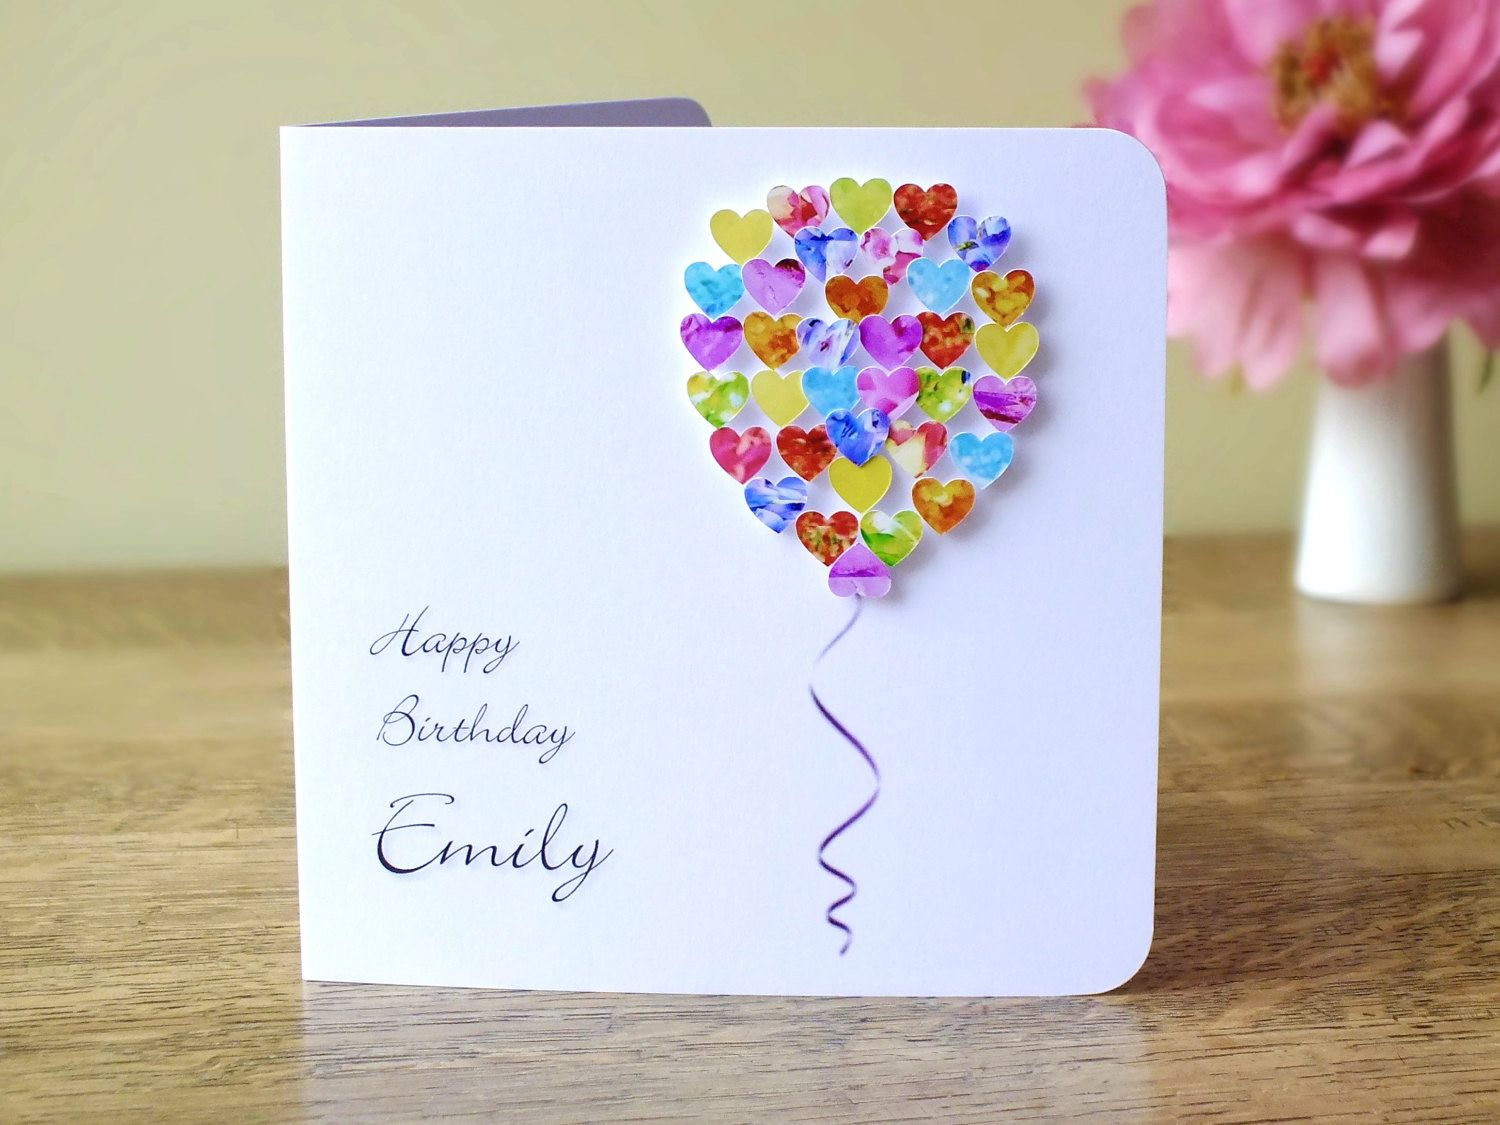 Astonishing Personalised Birthday Card Customised Colourful Balloon Birthday Personalised Birthday Cards Veneteletsinfo